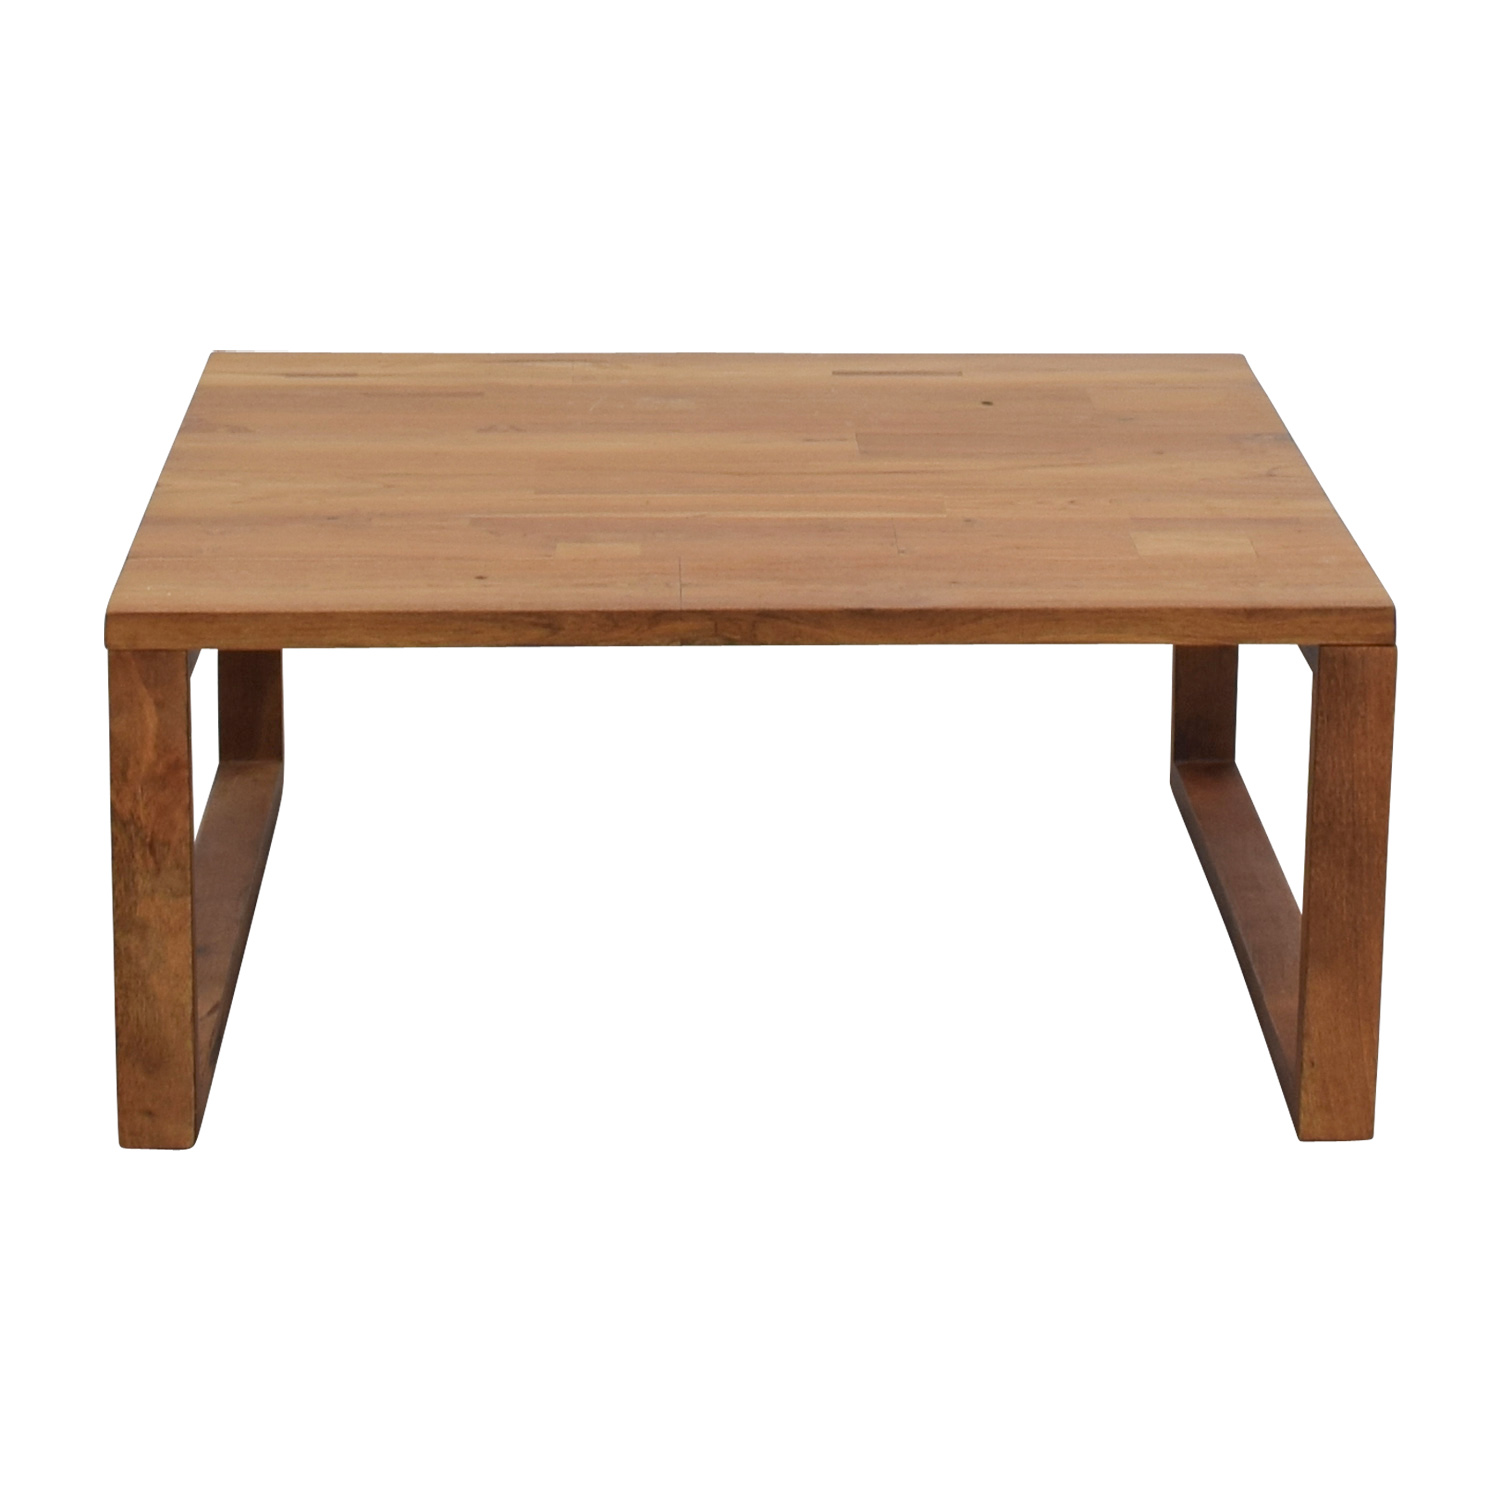 buy Wood Coffee Table online